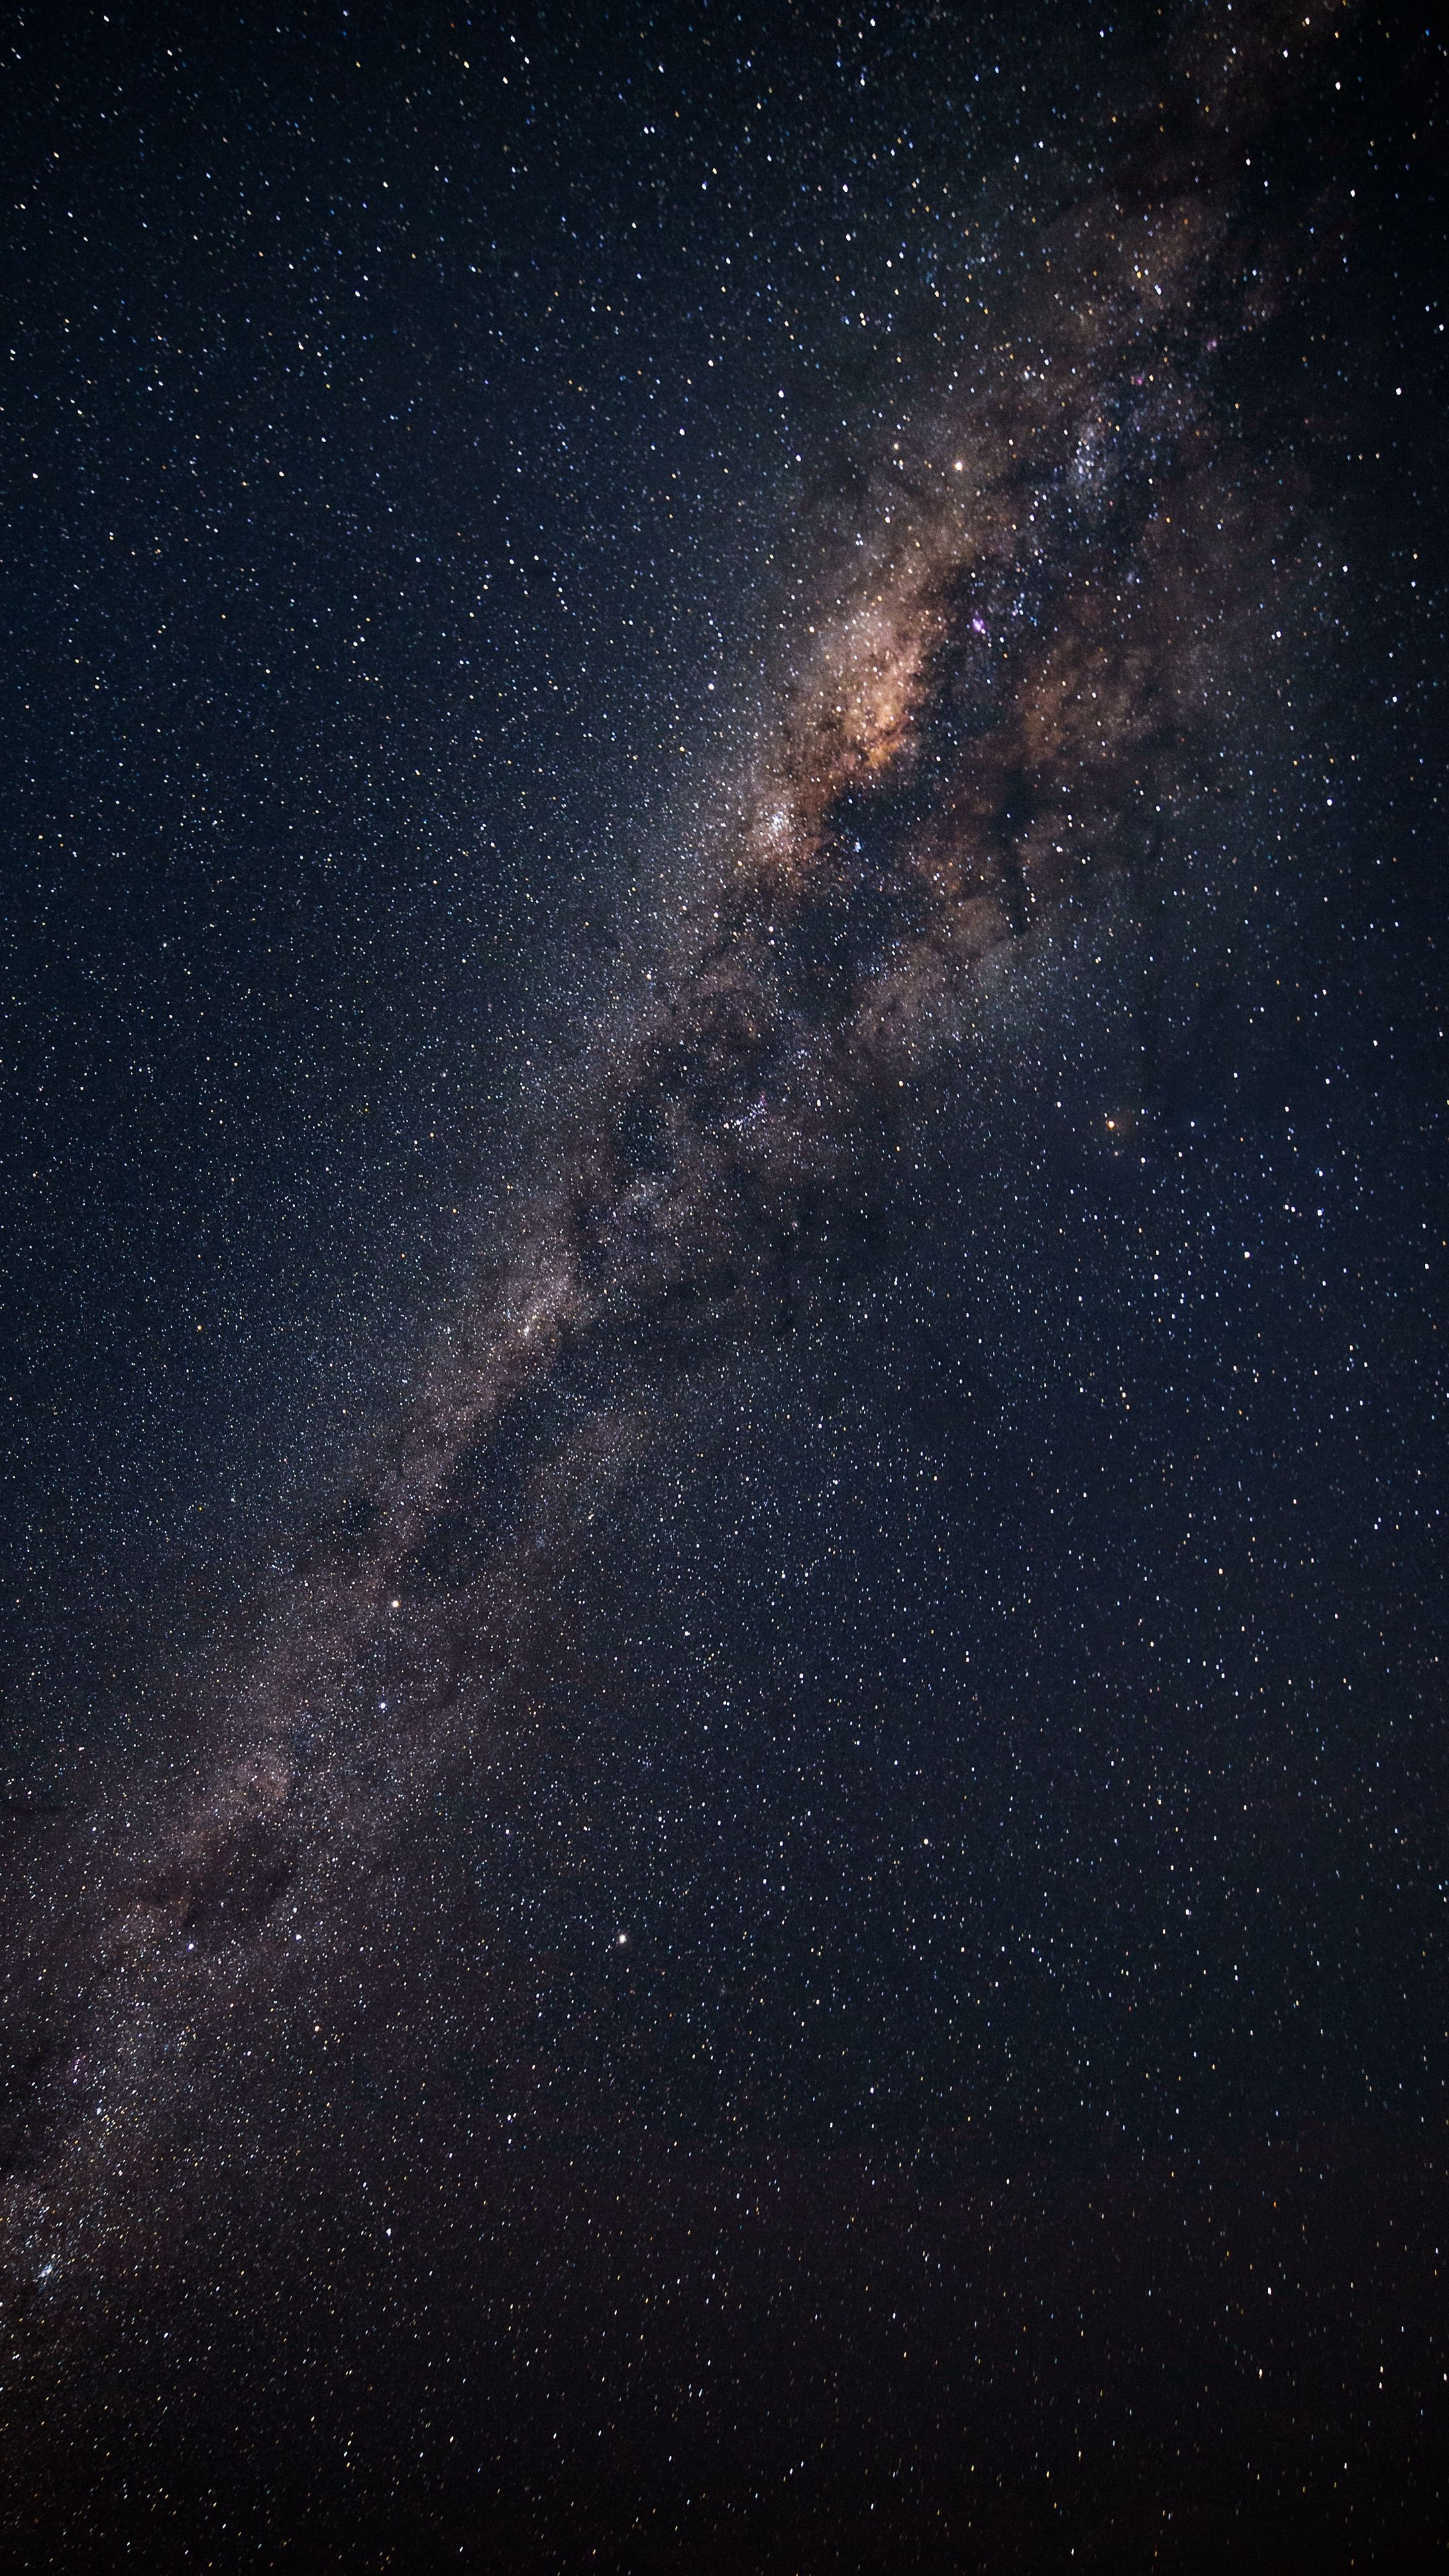 2160x3840 Wallpaper Sternenhimmel Milchstrasse Astronomie Galaxis Galaxy Wallpaper Iphone Milky Way Photography Galaxy Wallpaper